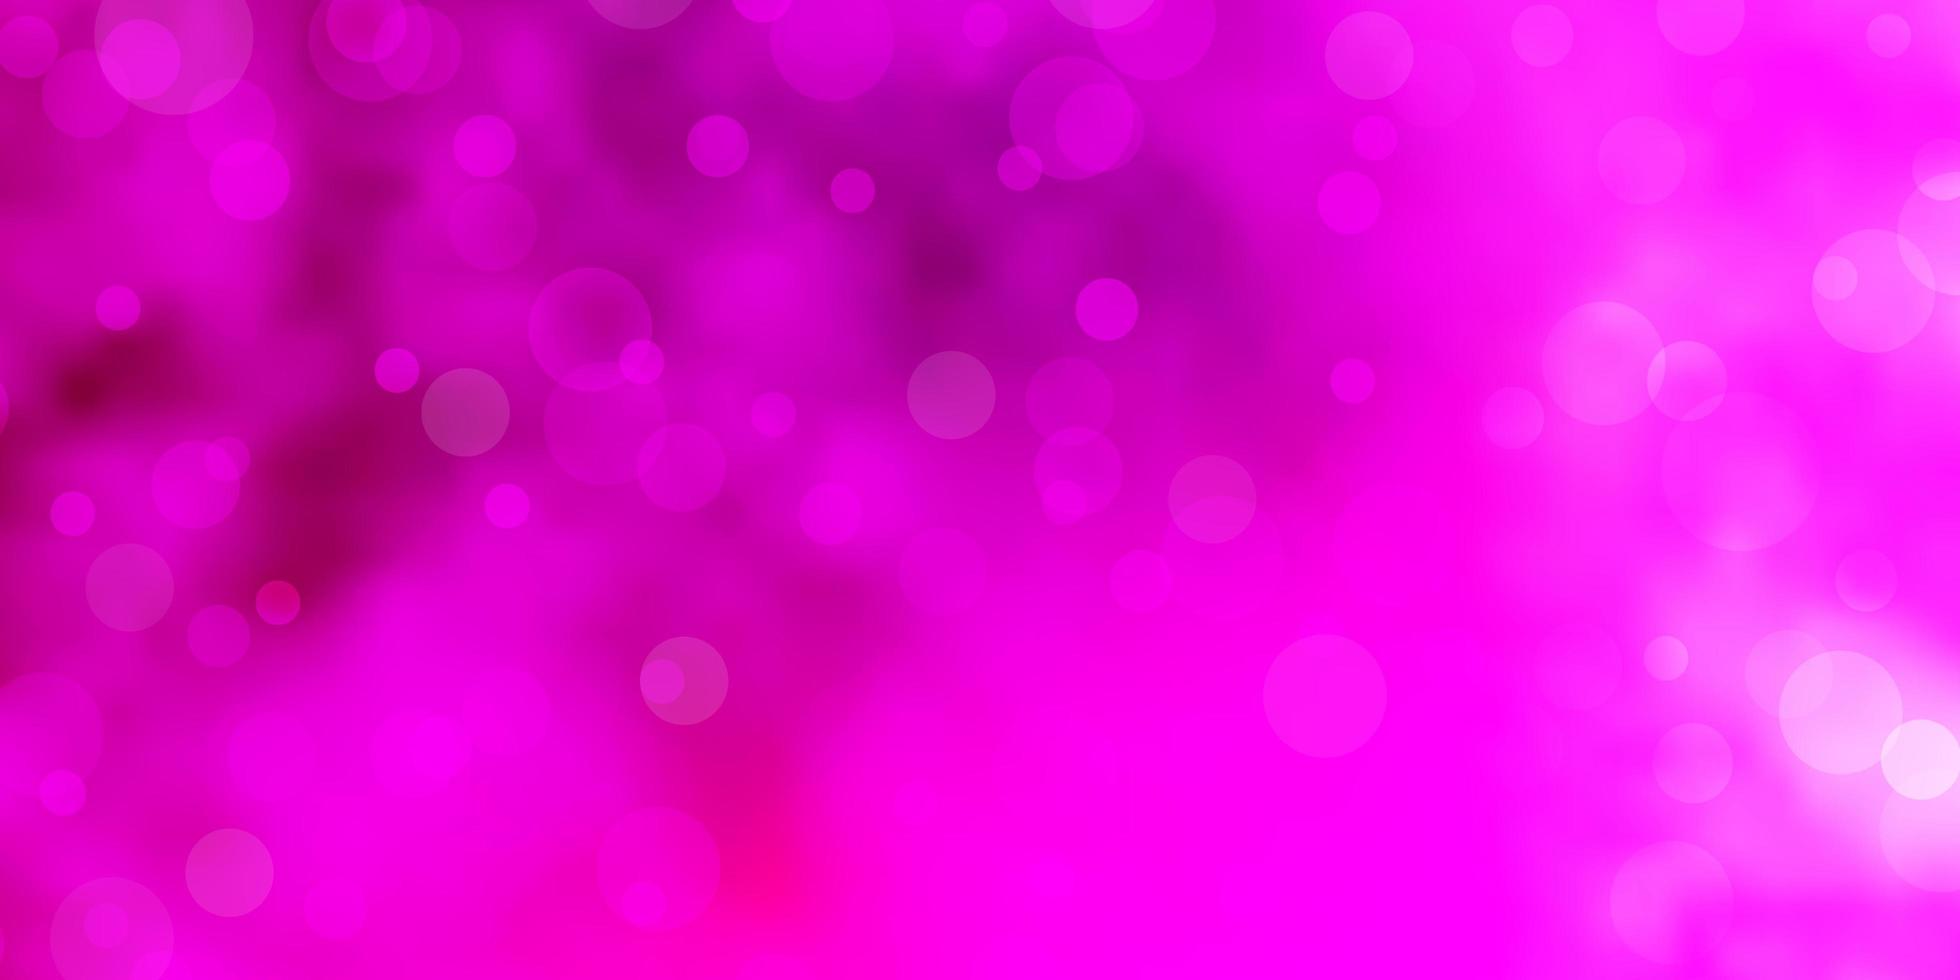 Light Pink layout with circle shapes. vector